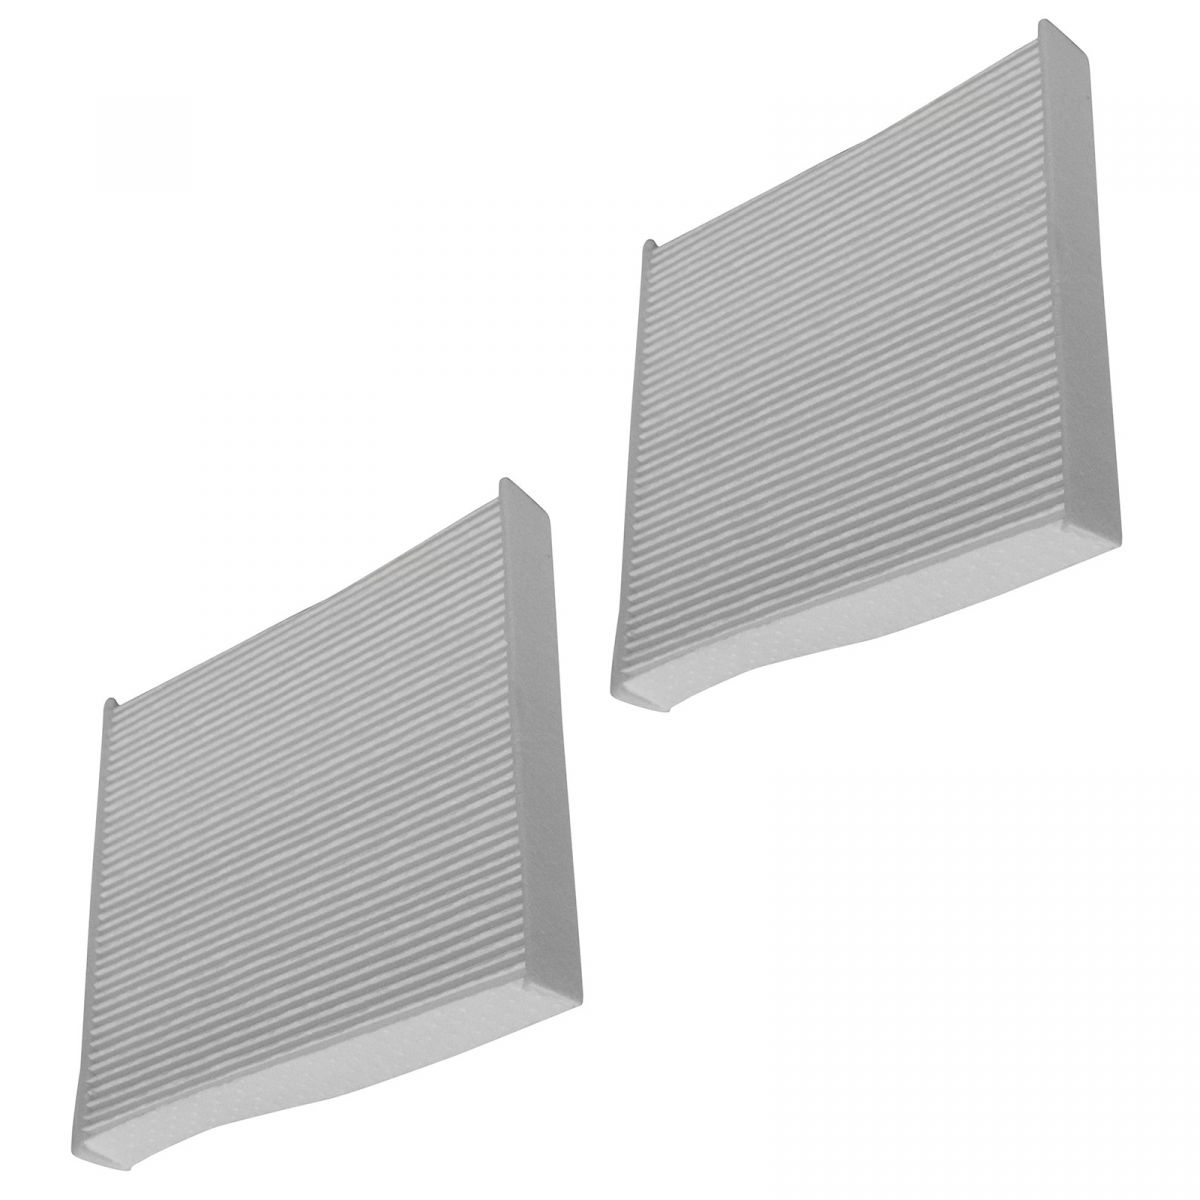 Interior Cabin Air Filter Paper Style Pair For Civic CRV